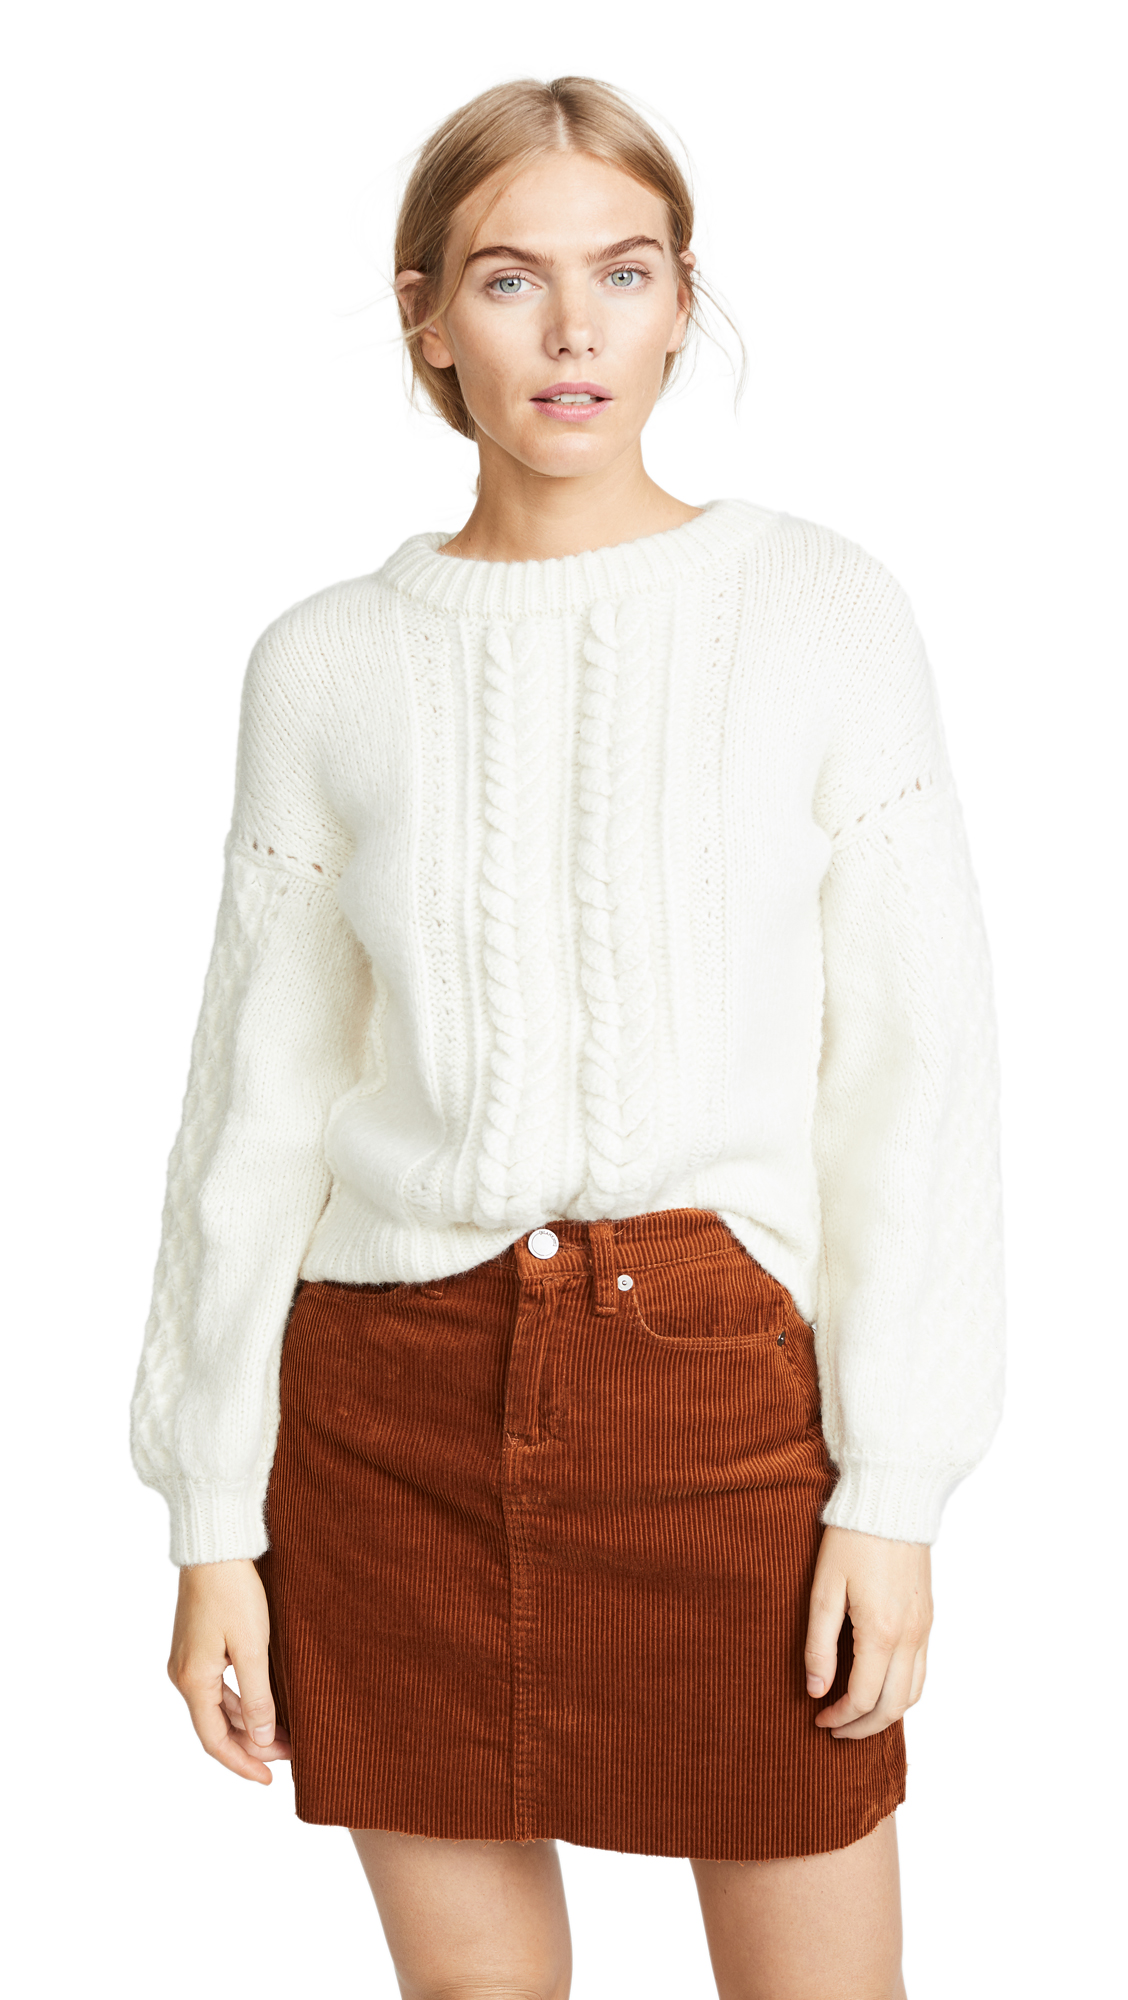 M.PATMOS Anouk Sweater in Ivory